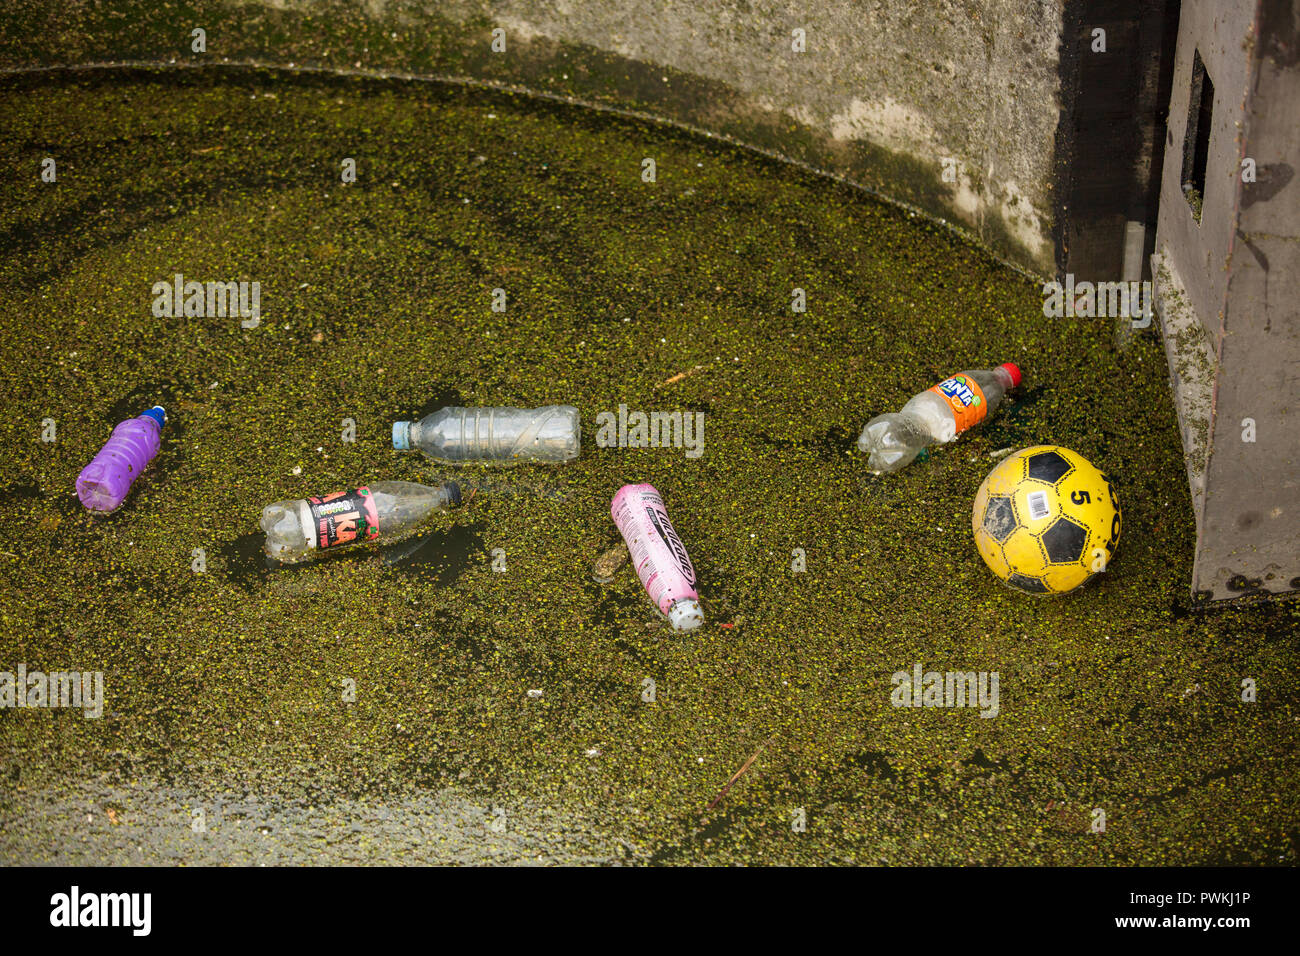 Plastic bottles, ball, floating in the water of Limehouse Basin, London, UK, increasing the pollution and the contamination of canals, rivers and seas - Stock Image